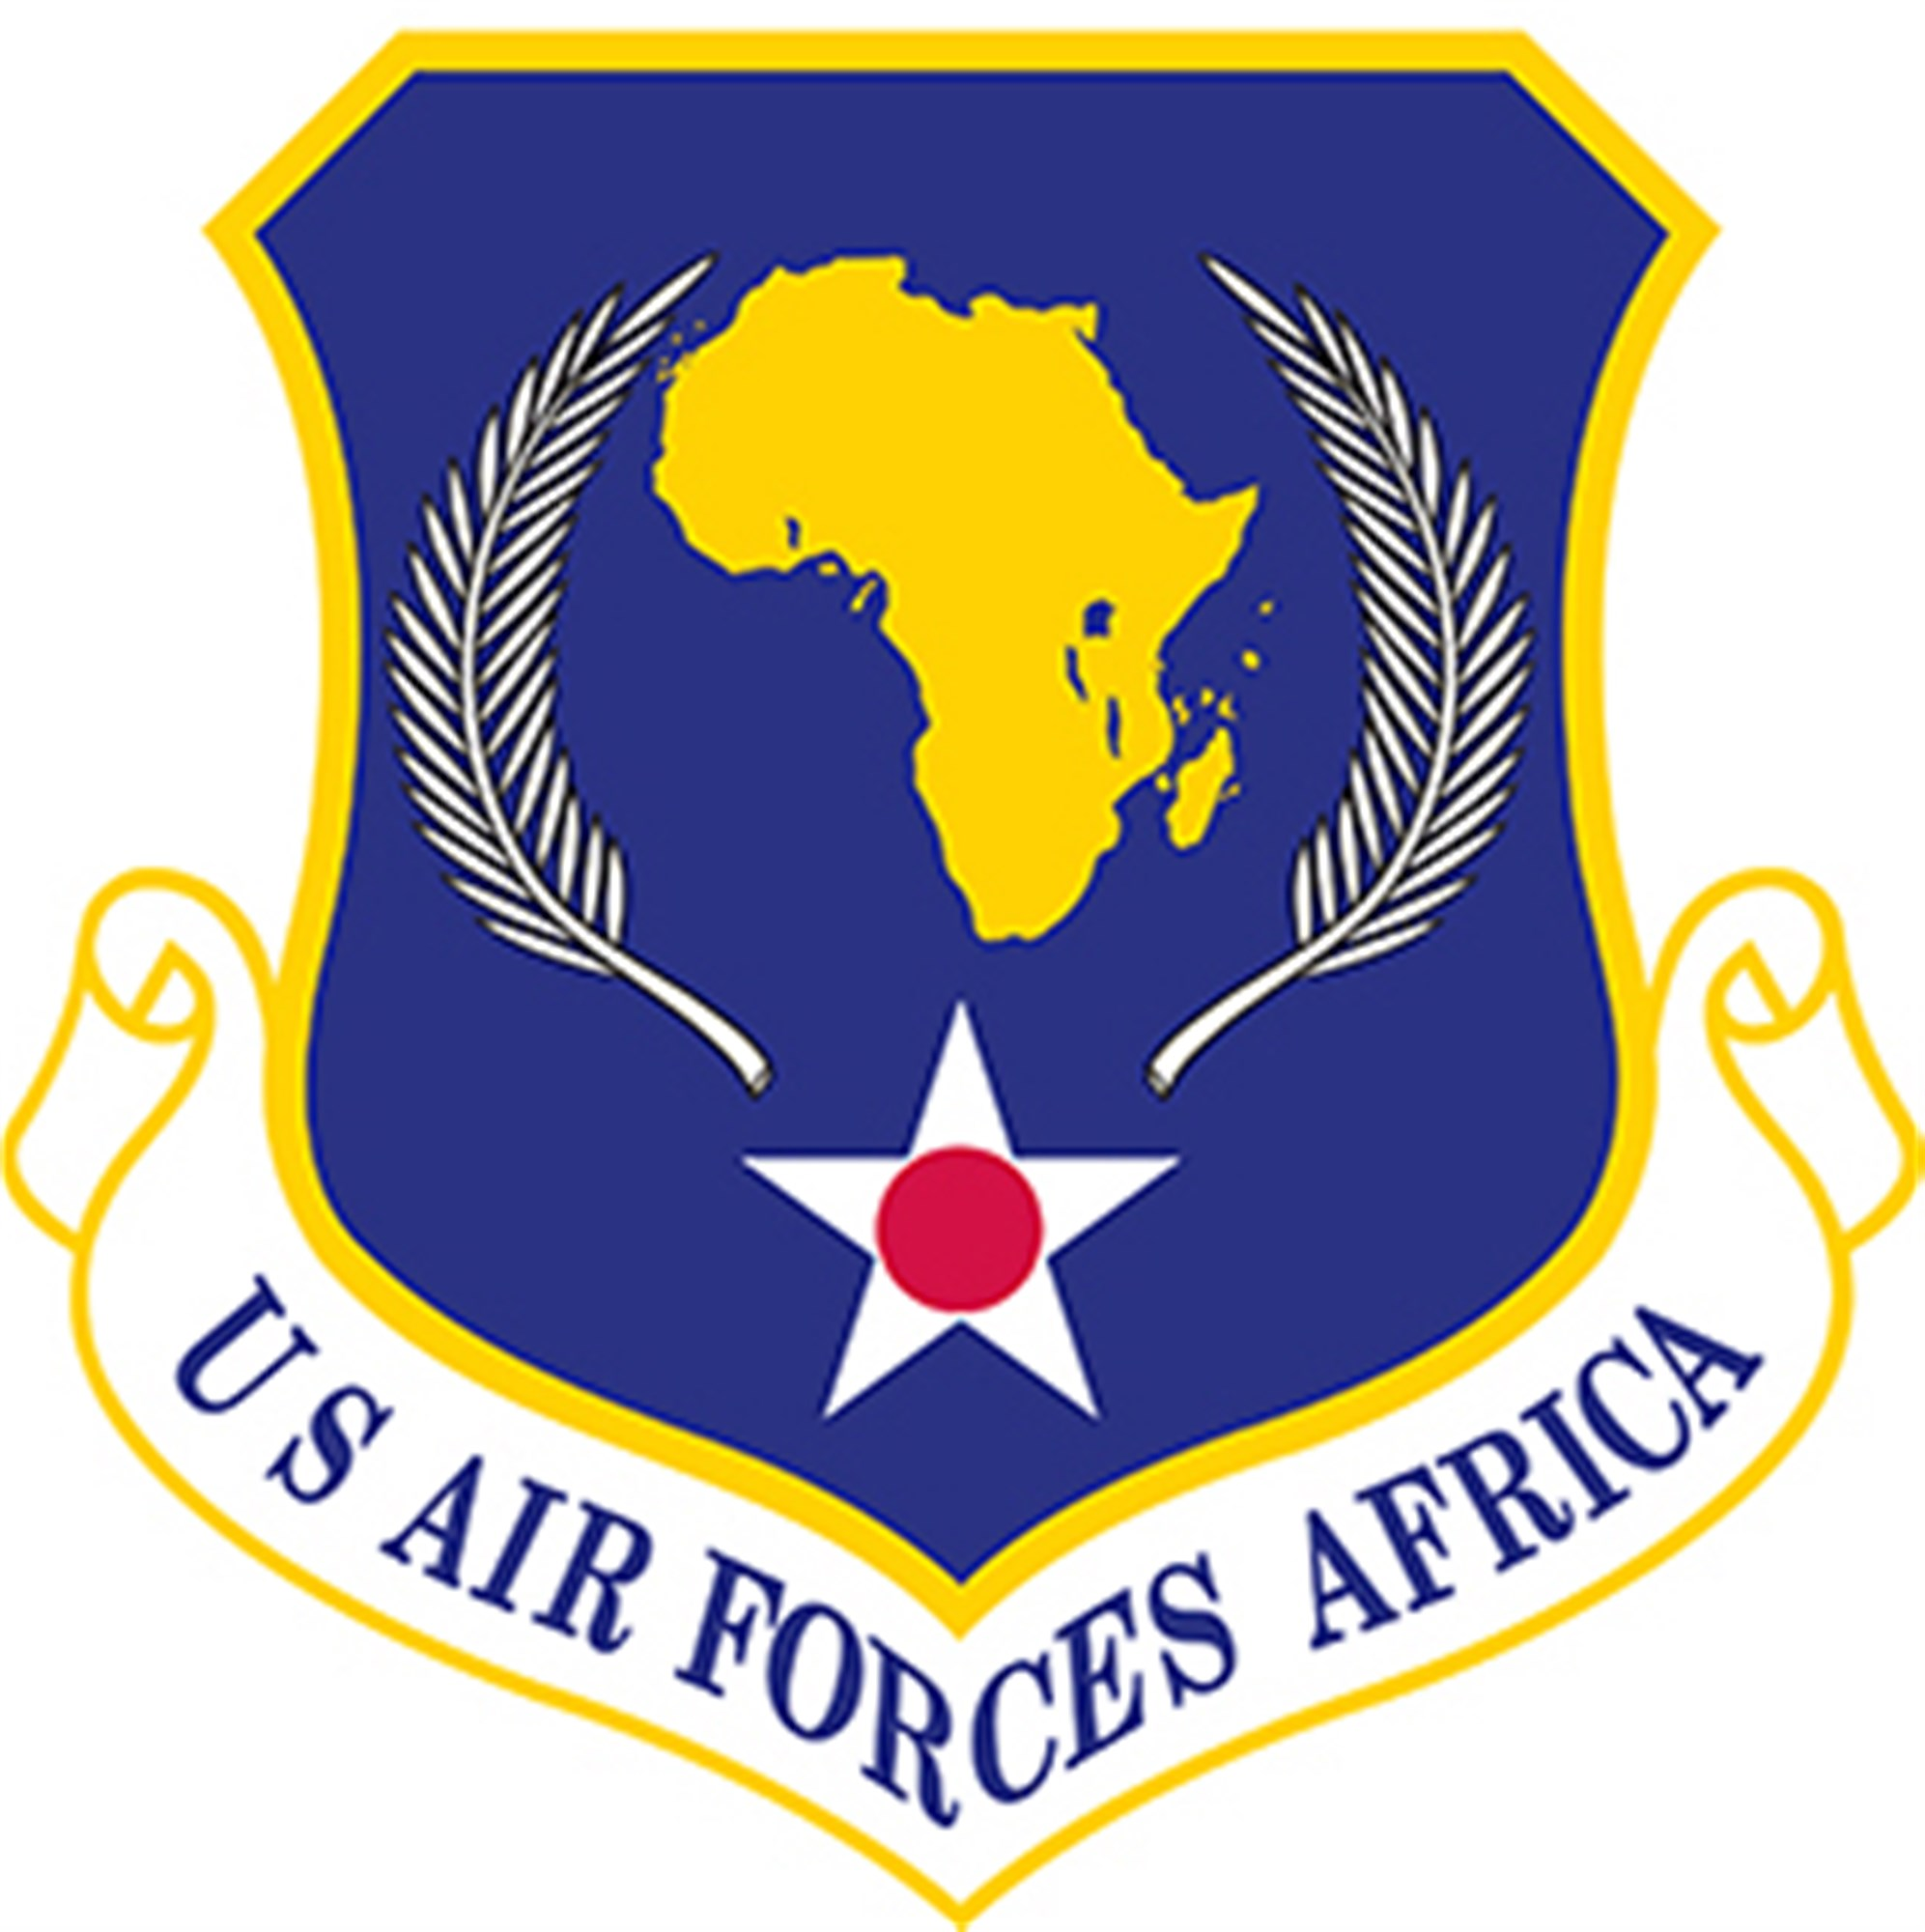 As the air component of USAFRICOM, U.S. Air Forces Africa (AFAFRICA) conducts sustained security engagement and operations to promote air safety, security, and development in Africa.